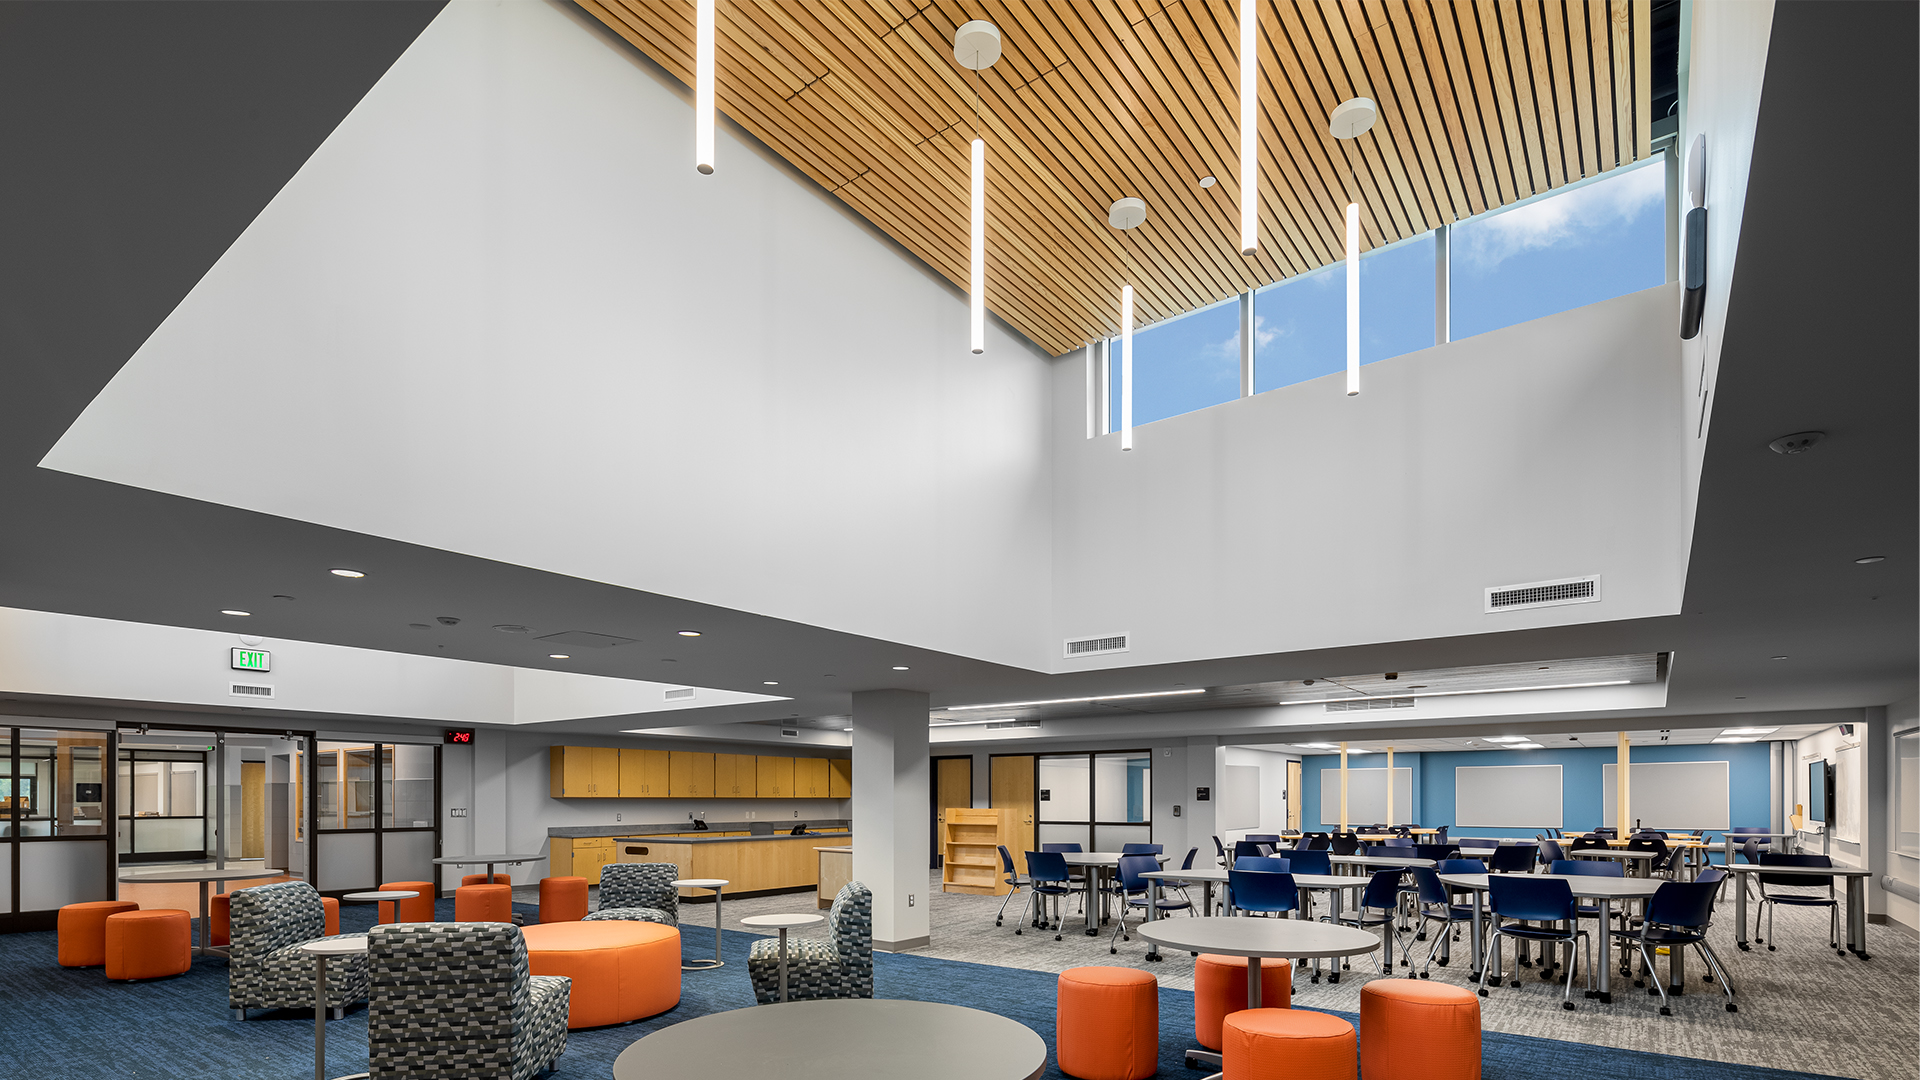 1-Interior-5_SCHRADERGROUP_Council_Rock_School_District_Rolling_Hillls_Elementary_School